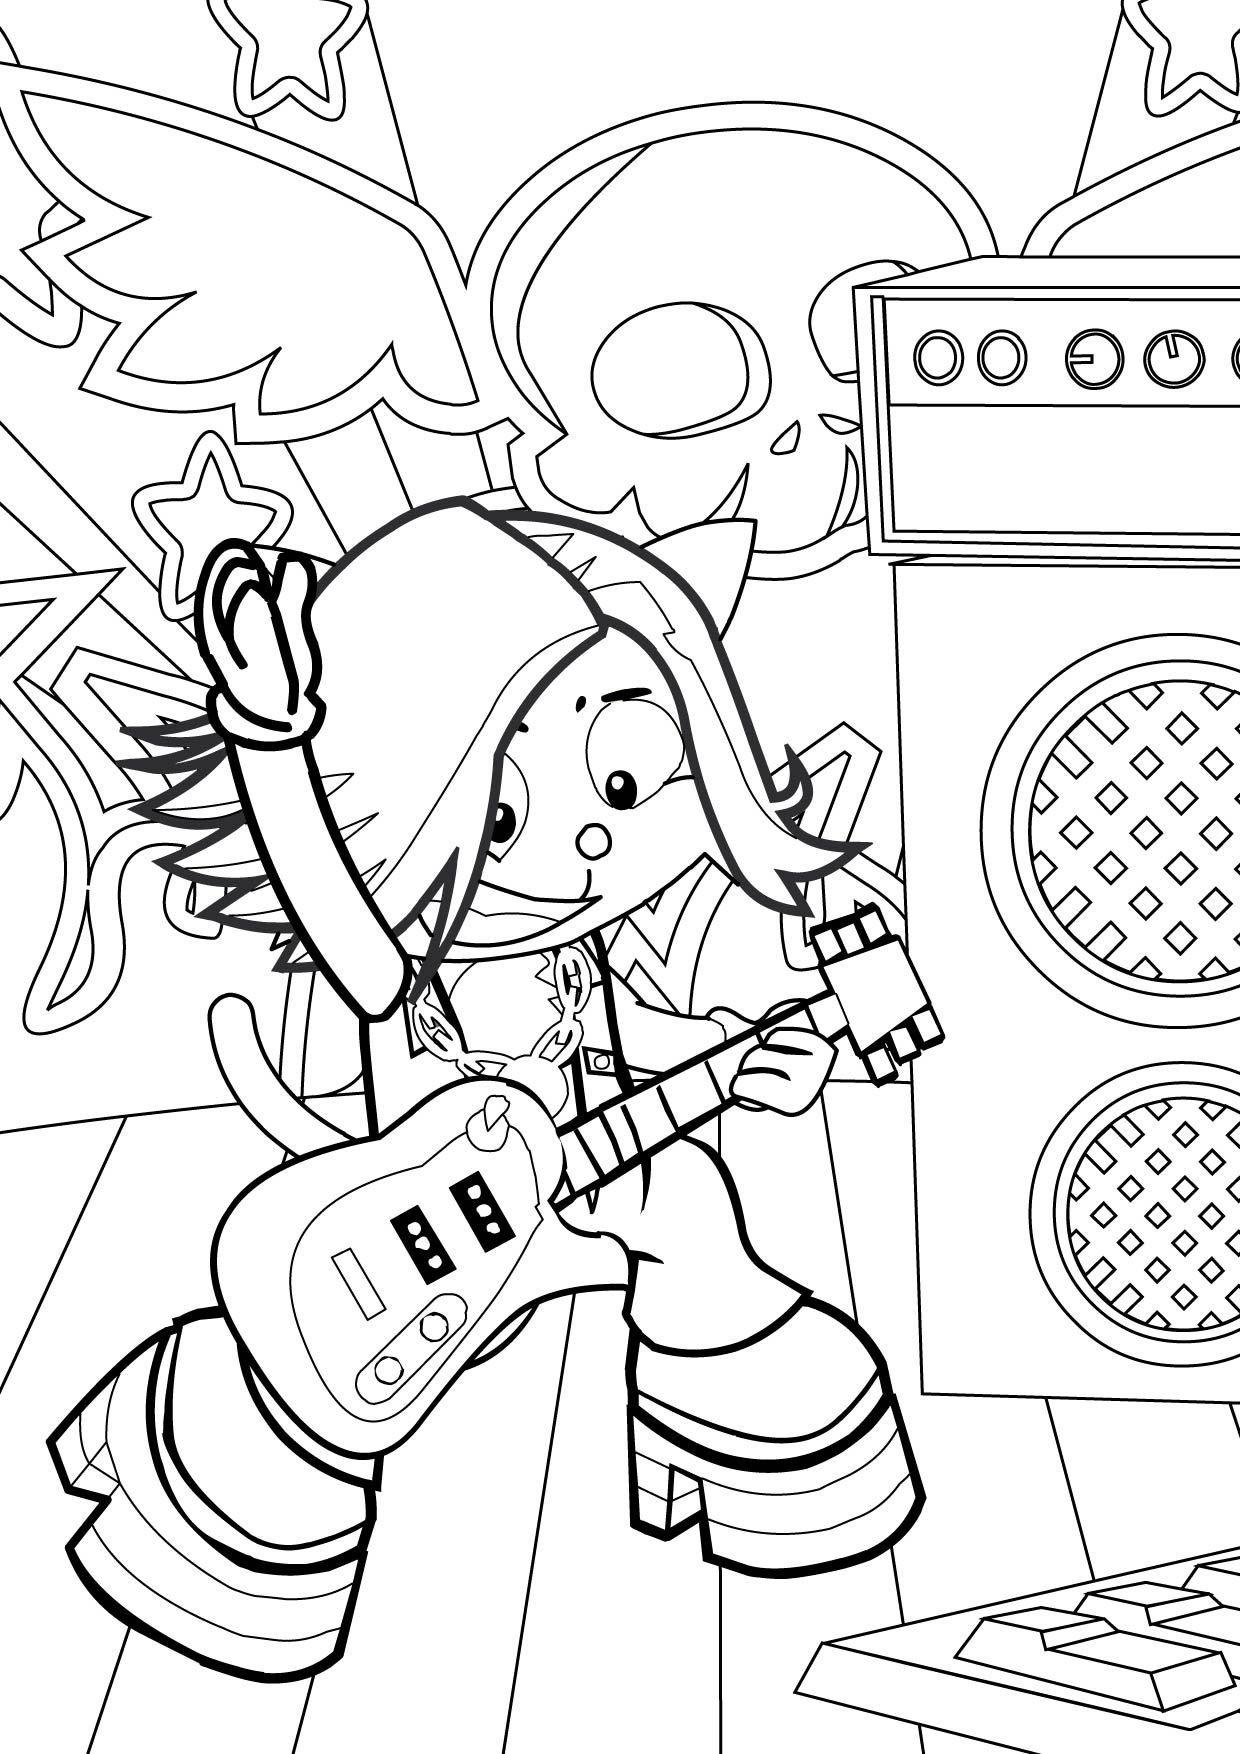 Rock Star Coloring Pages Star Coloring Pages Coloring Pages Cool Coloring Pages